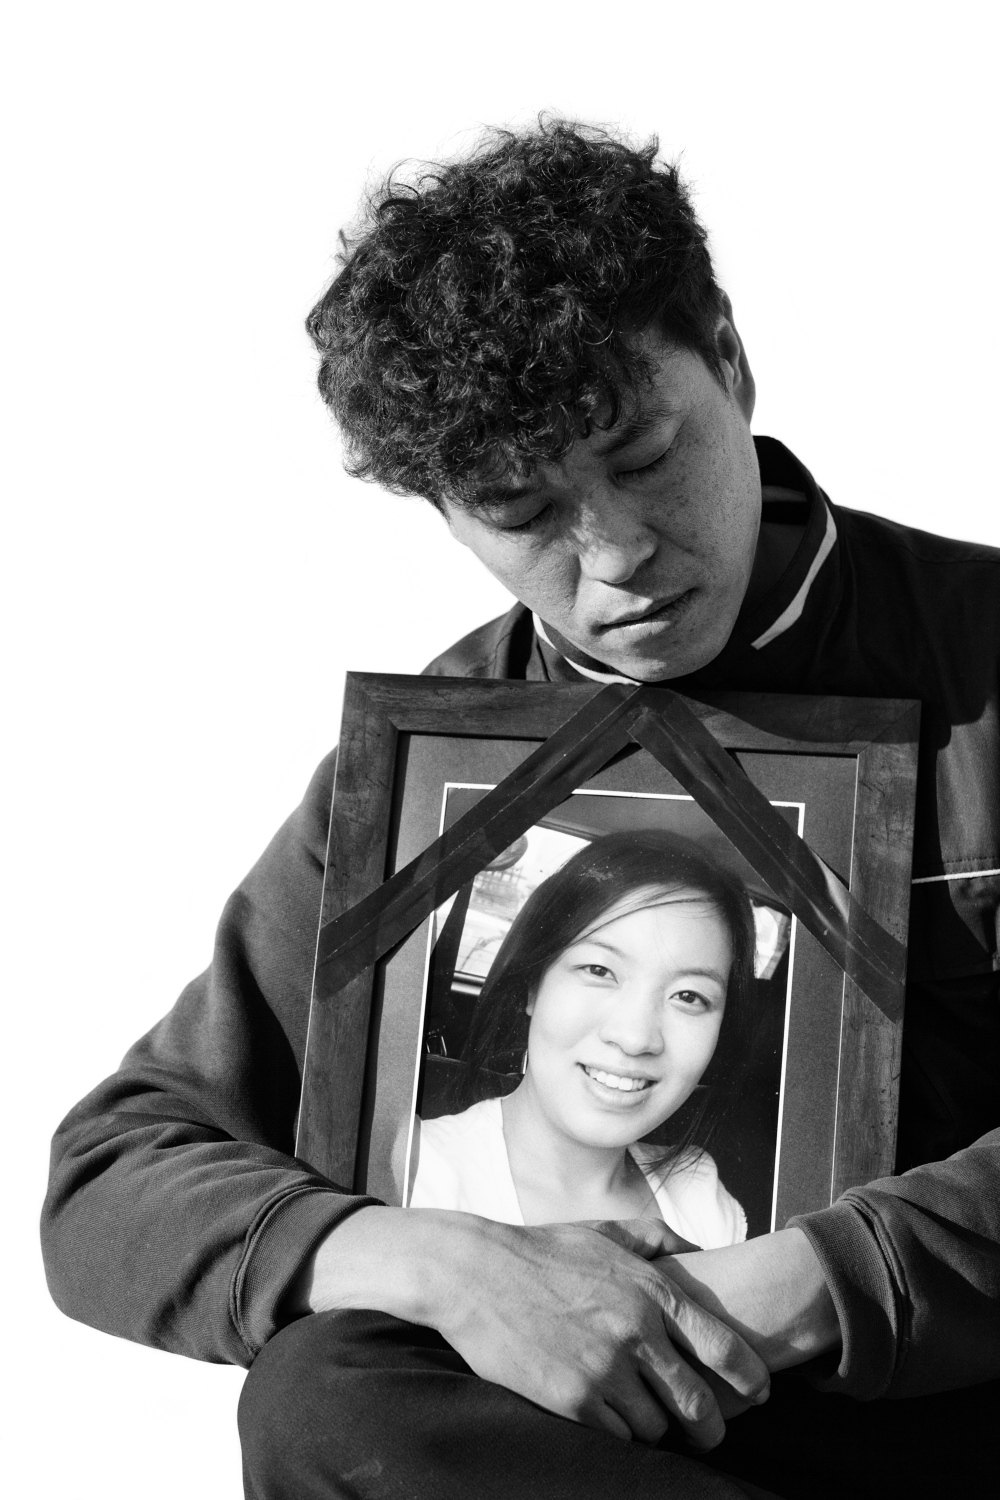 Chung Hee-su holds a portrait of his deceased wife, Lee Yoon-jung in Bucheon, South Korea on Nov. 7, 2013. Lee Yoon-jung worked at Samsung Electronics semiconductor chip factory in South Korea from 1997 to 2003. She died of a brain tumor in 2012. He applied for industrial accident compensation insurance and pension to COMWEL, Korea Workers' Compensation & Welfare Service in 2011. After long struggles and debates,  The Supreme Court of South Korea sentenced that the brain tumor caused Lee Yoon-jung's death is work-related on Nov. 14, 2017. It was the first case that The Korean Supreme Court recognized a brain tumor is an industrial accident from a semiconductor chip factory.